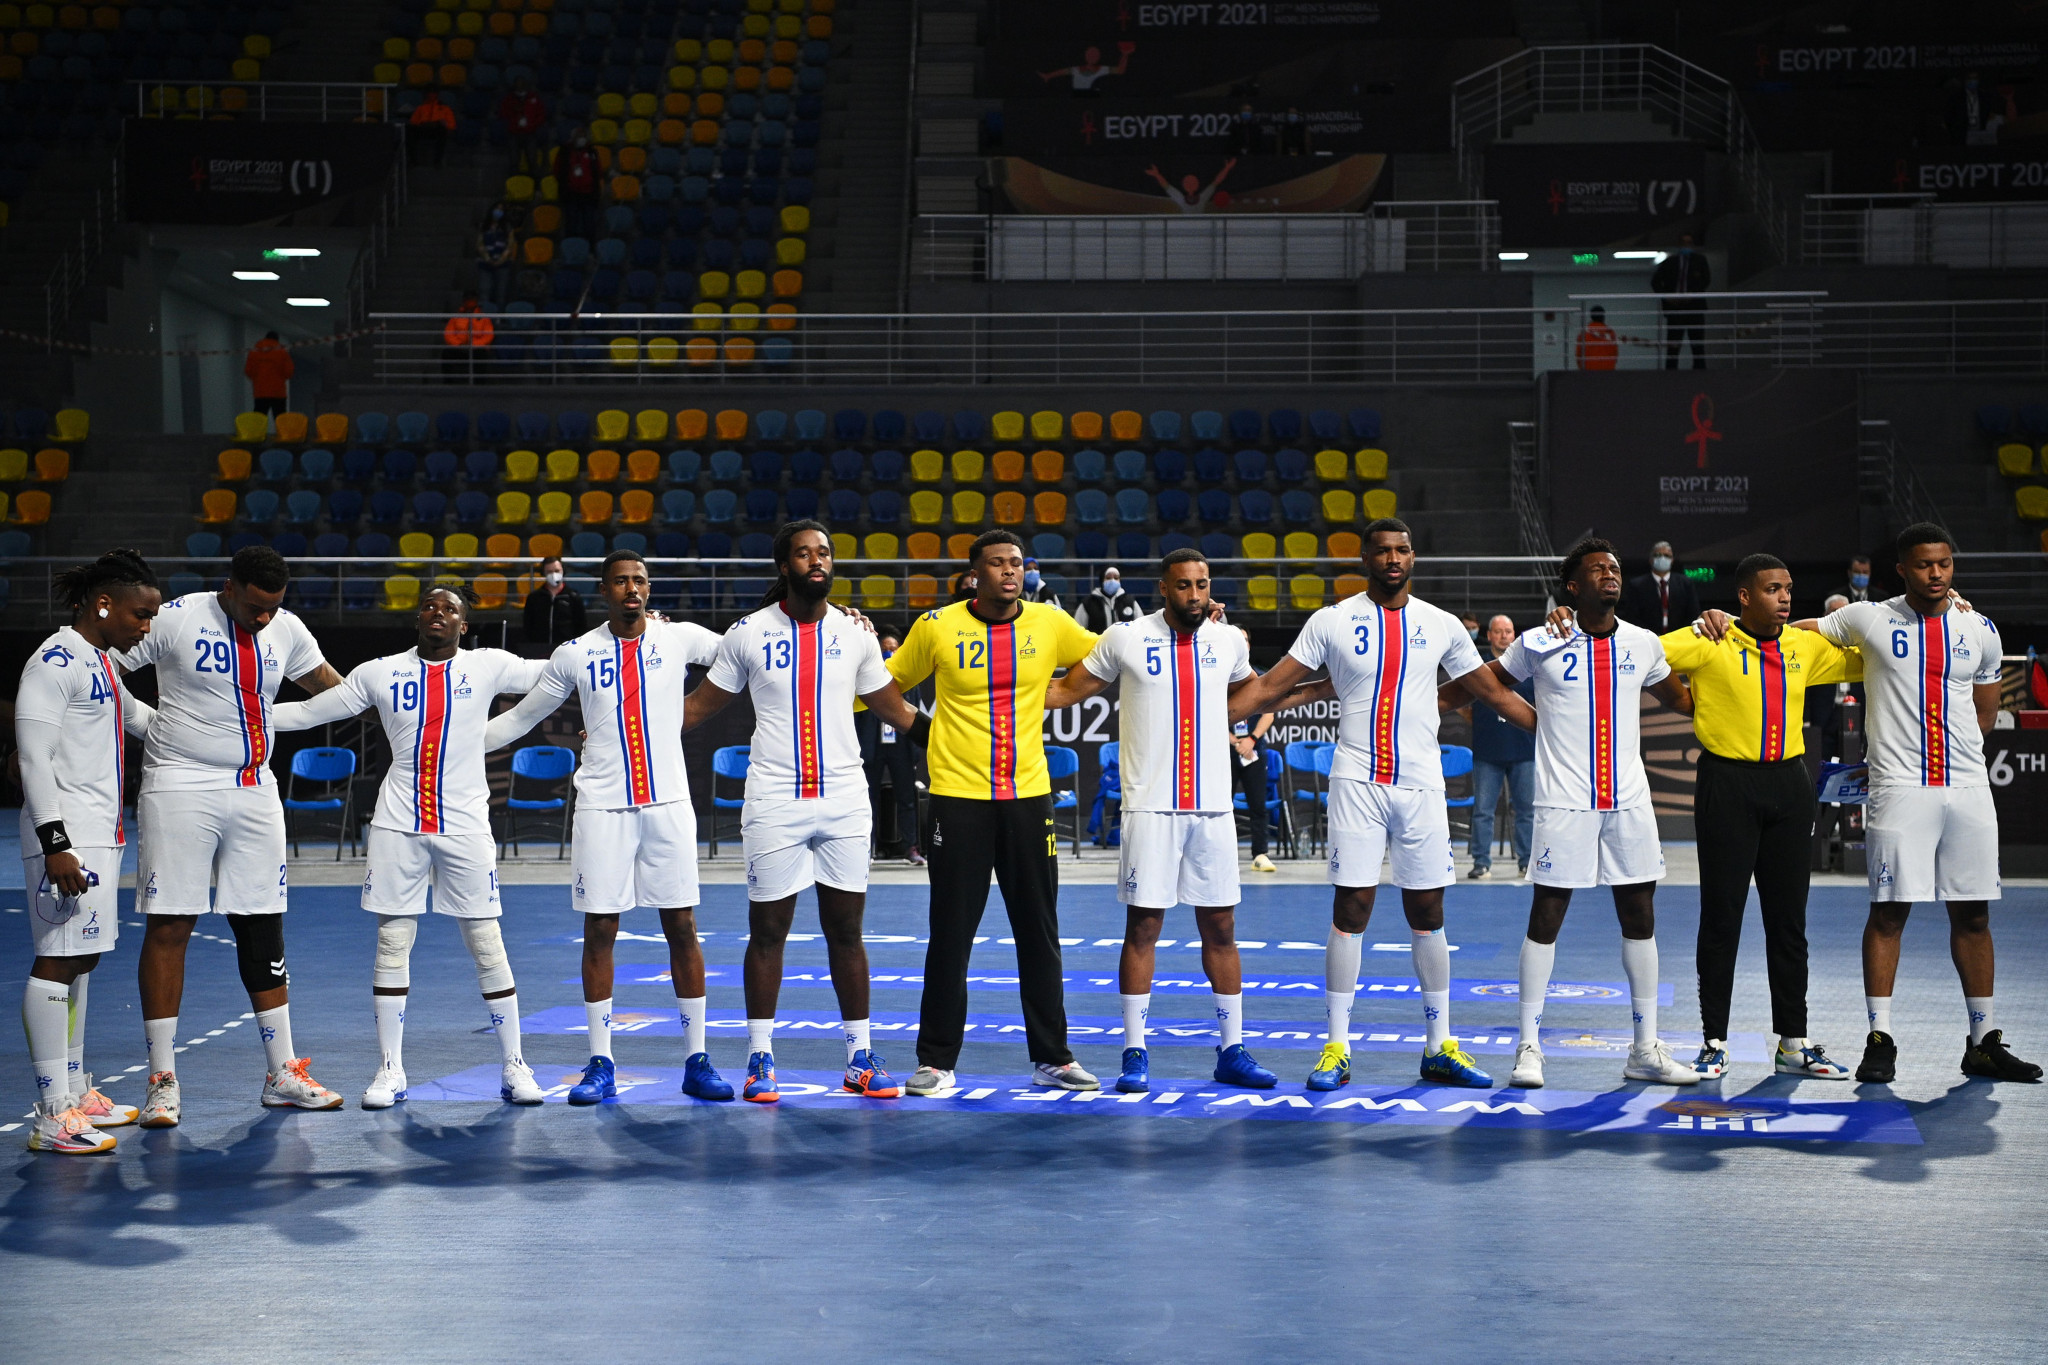 Cape Verde withdraw from World Men's Handball Championship as group stage action continues